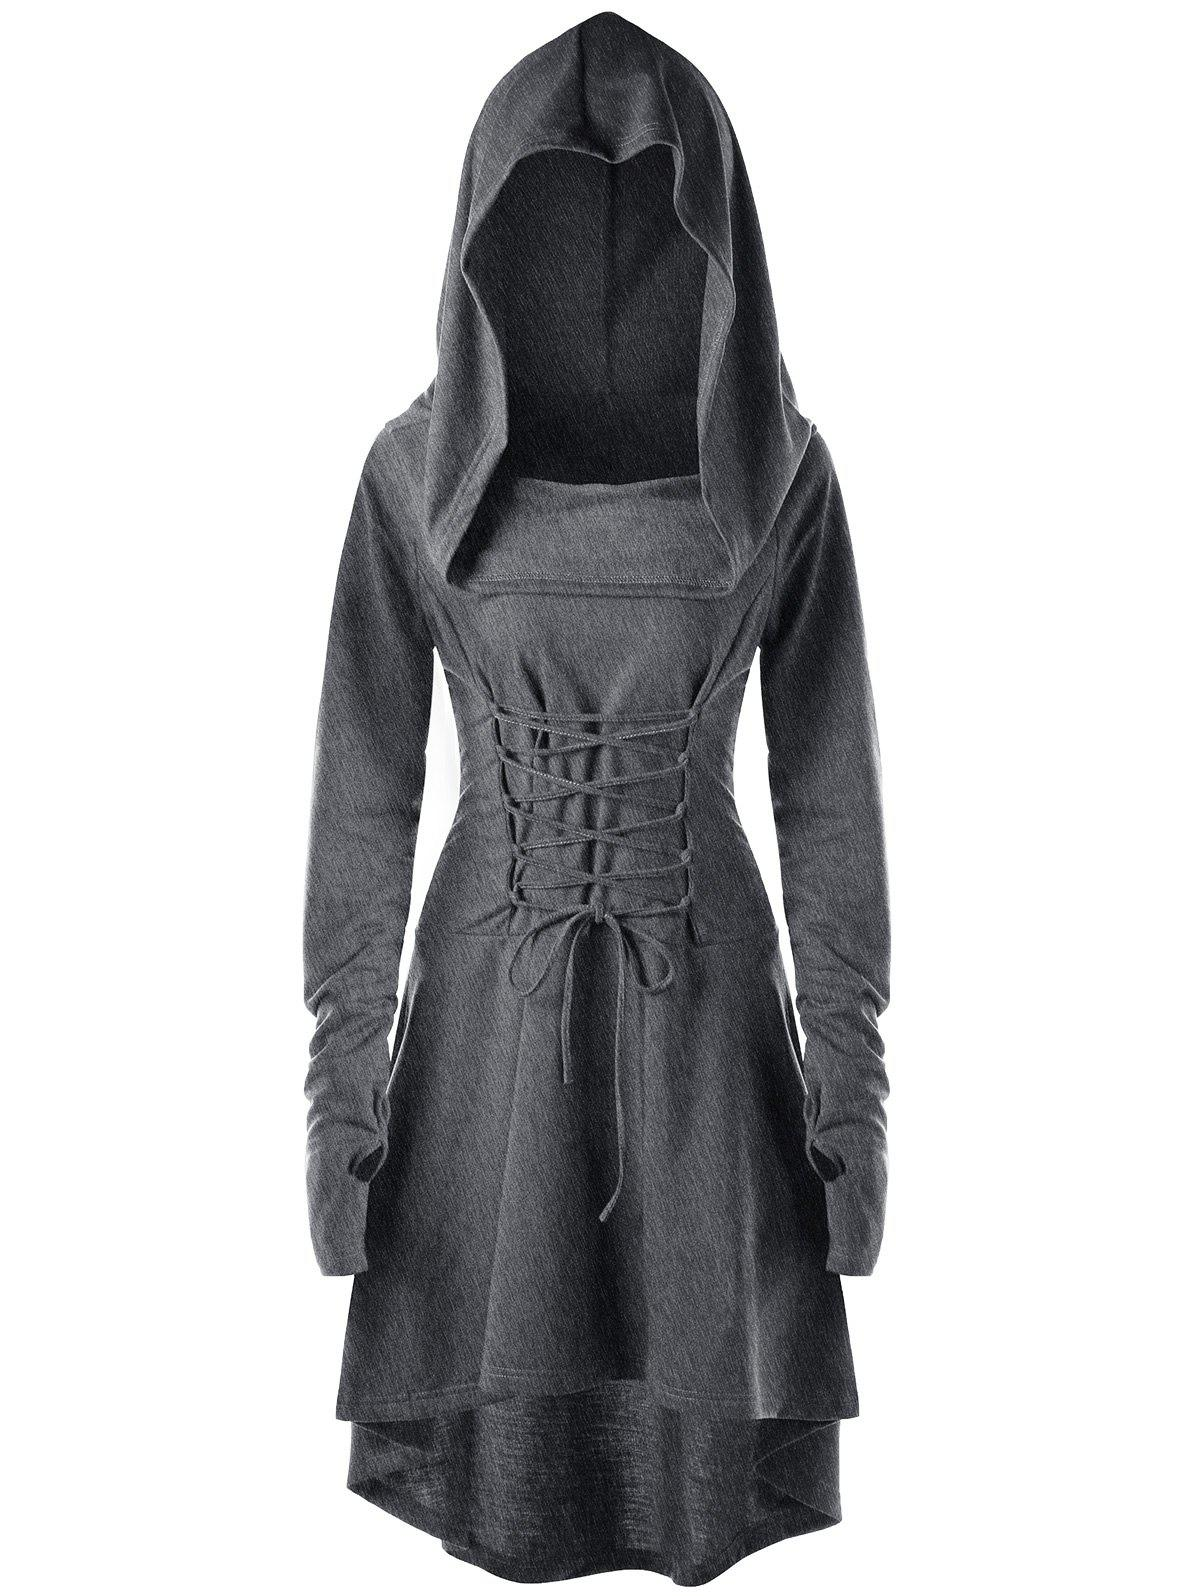 Hooded Lace Up High Low DressWOMEN<br><br>Size: L; Color: DARK HEATHER GRAY; Style: Novelty; Material: Polyester,Spandex; Silhouette: Asymmetrical; Dresses Length: Mid-Calf; Neckline: Hooded; Sleeve Length: Long Sleeves; Embellishment: Criss-Cross; Pattern Type: Solid; With Belt: No; Season: Fall,Spring; Weight: 0.5500kg; Package Contents: 1 x Dress;